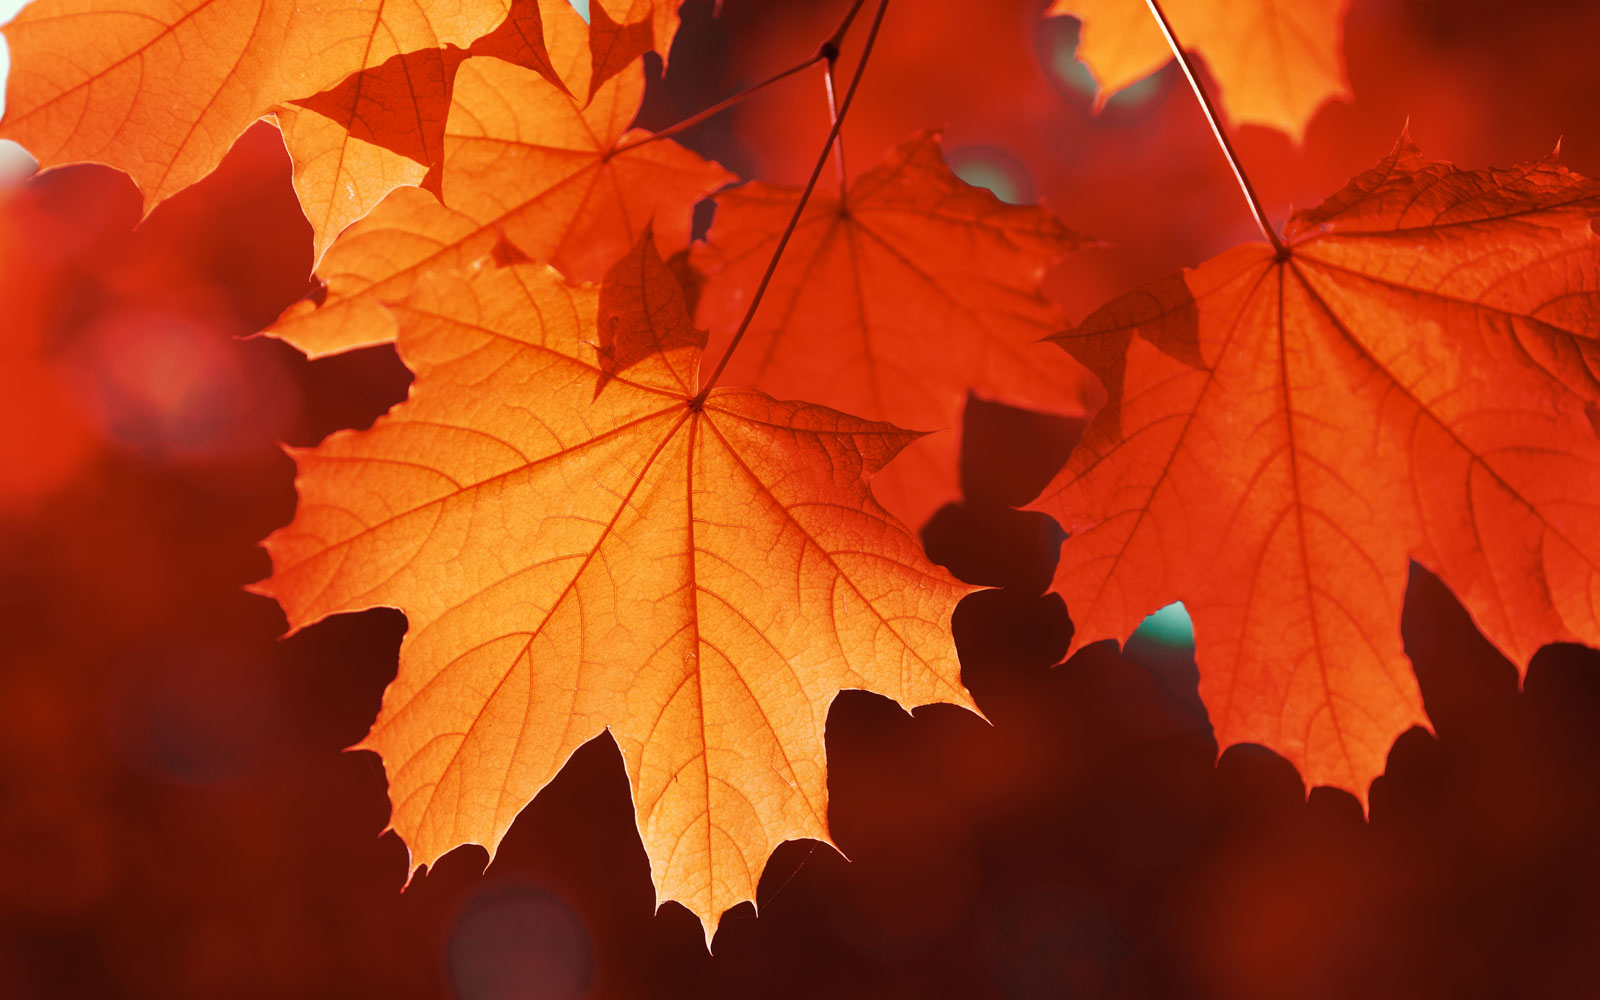 This Company Will Give You $1 for Every Fall Leaf You Send Them